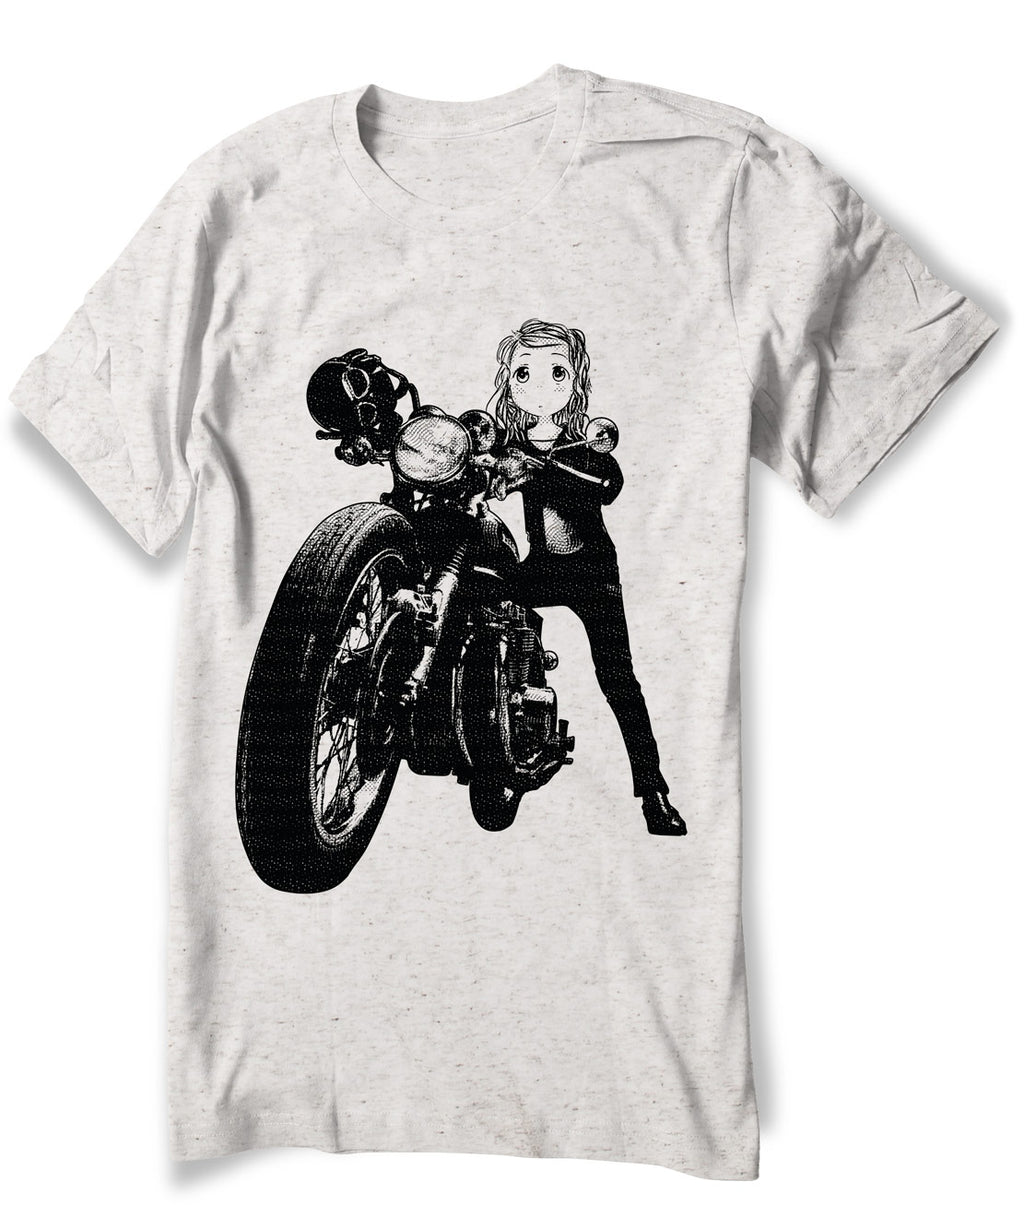 Anime Biker Girl Shirt